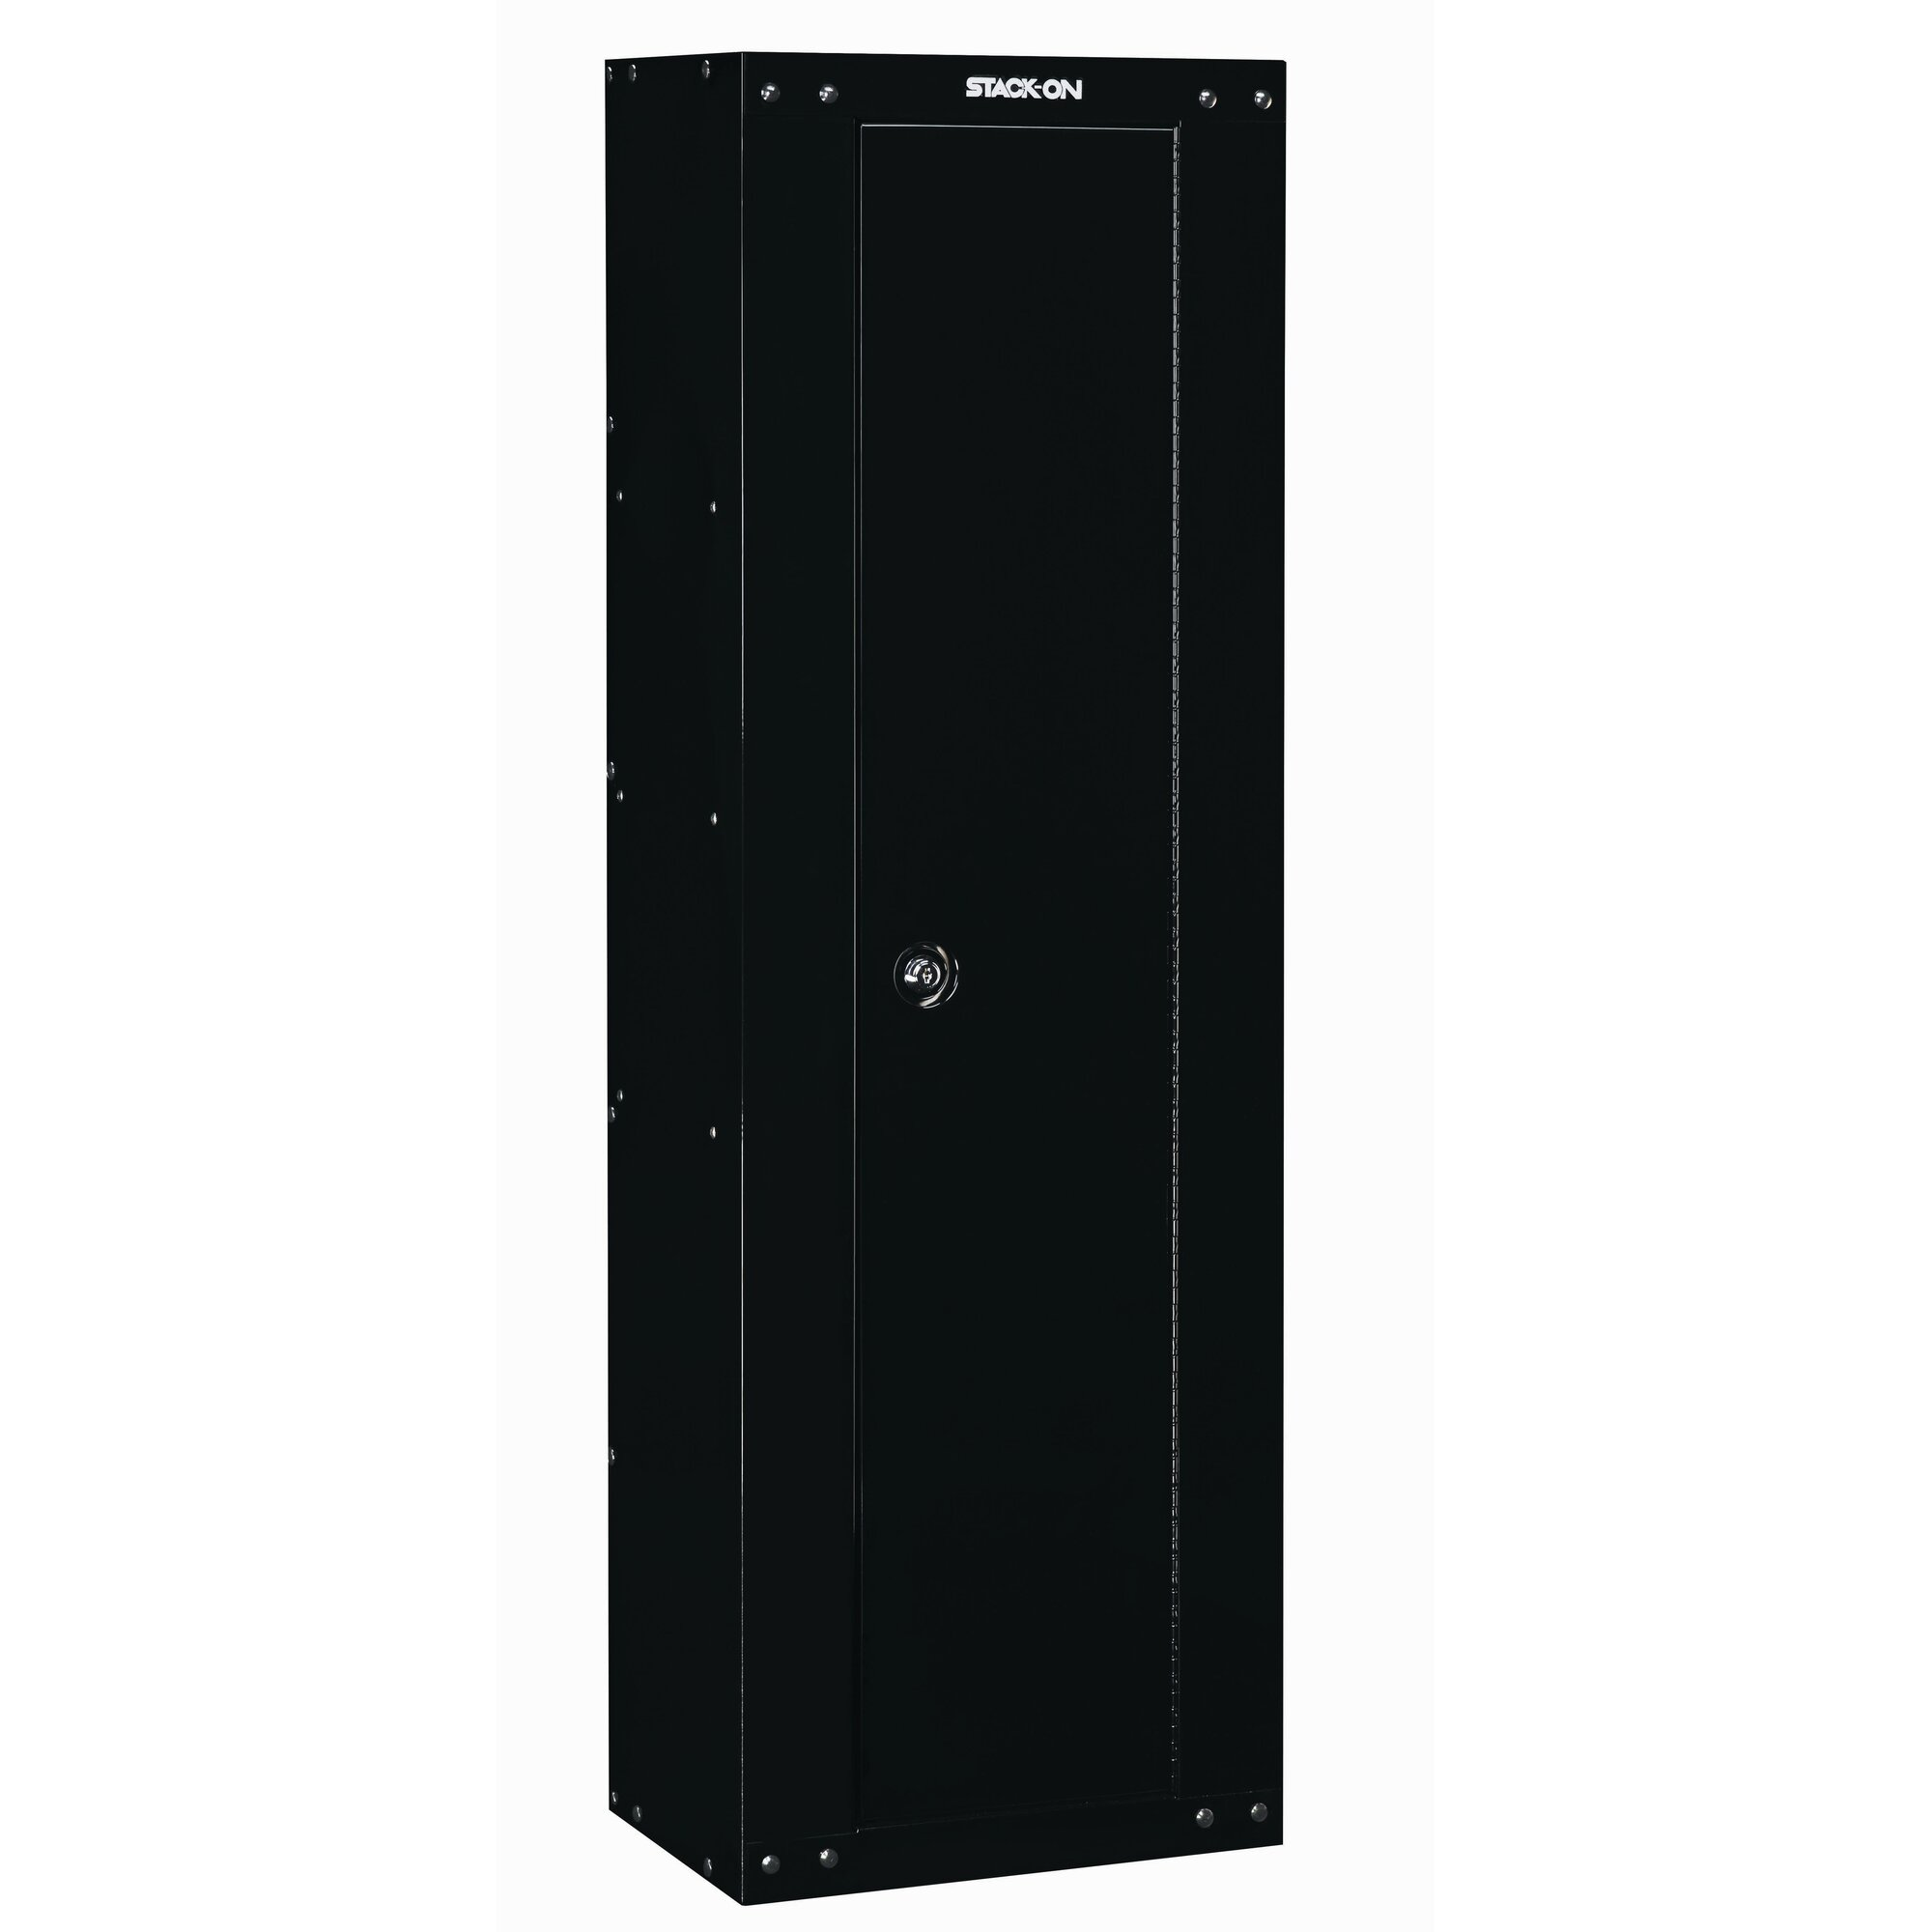 Stack on ready to assemble key lock security cabinet for Ready to assemble bedroom furniture